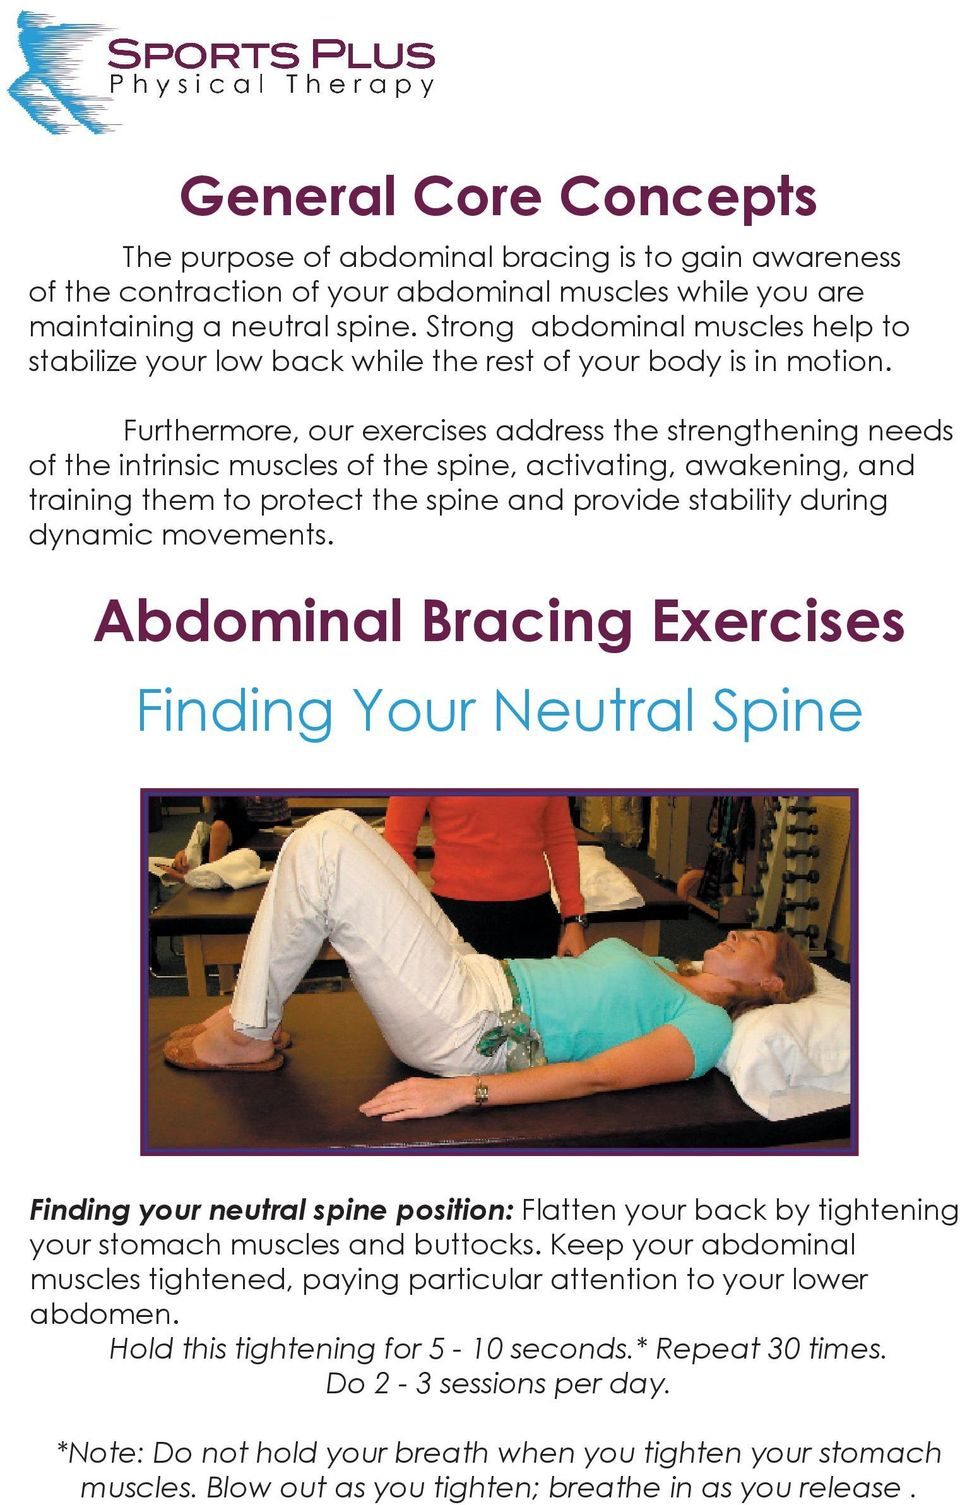 Furthermore, our exercises address the strengthening needs of the intrinsic muscles of the spine, activating, awakening, and training them to protect the spine and provide stability during dynamic